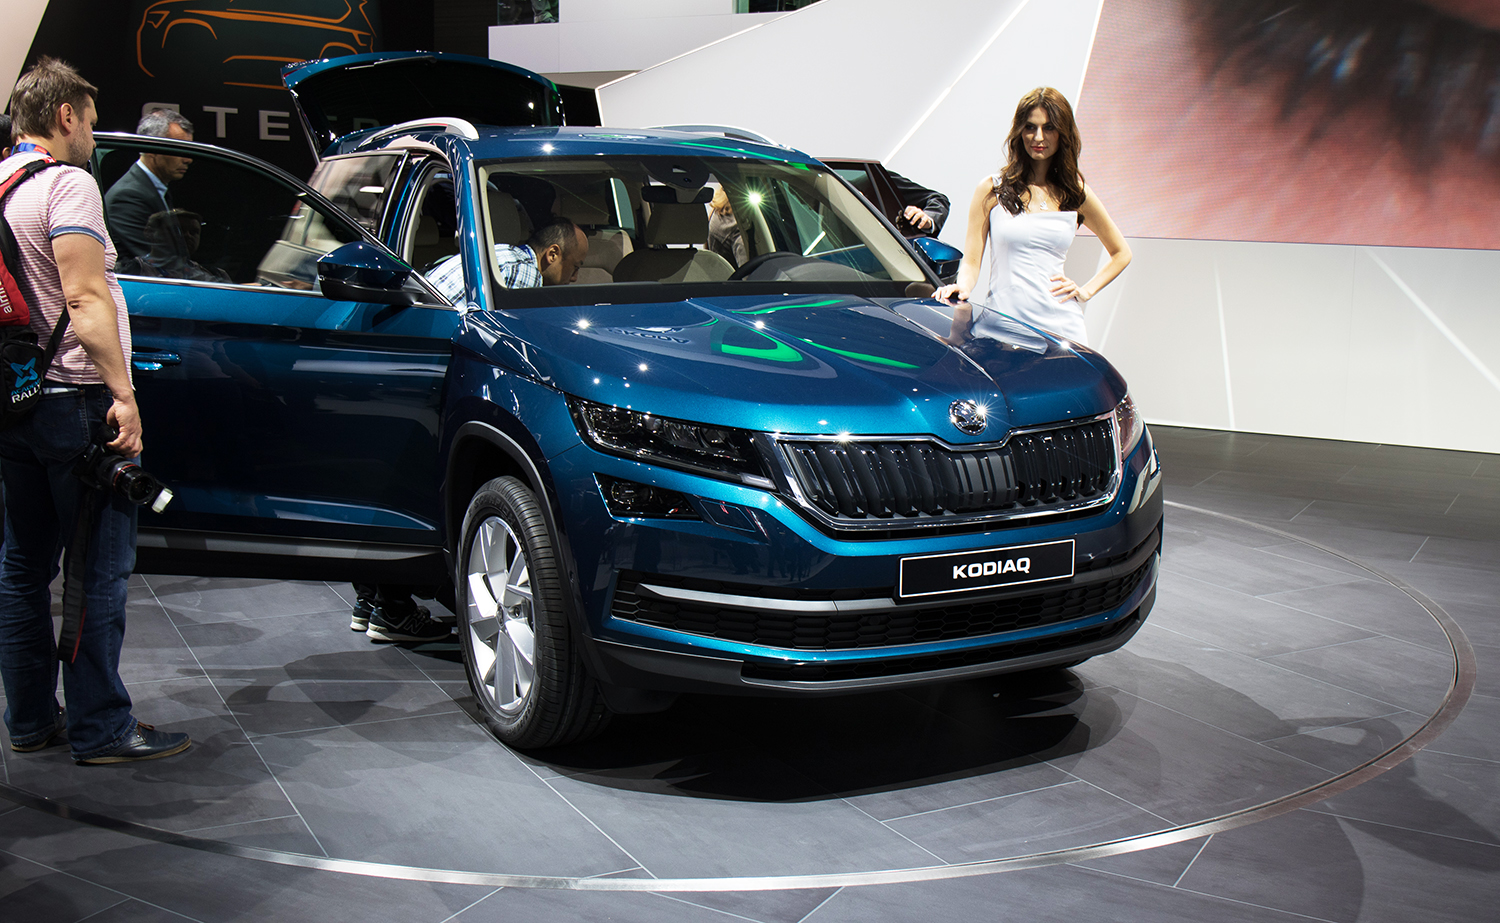 2017 skoda kodiaq seven seat suv revealed australian launch due next year photos caradvice. Black Bedroom Furniture Sets. Home Design Ideas